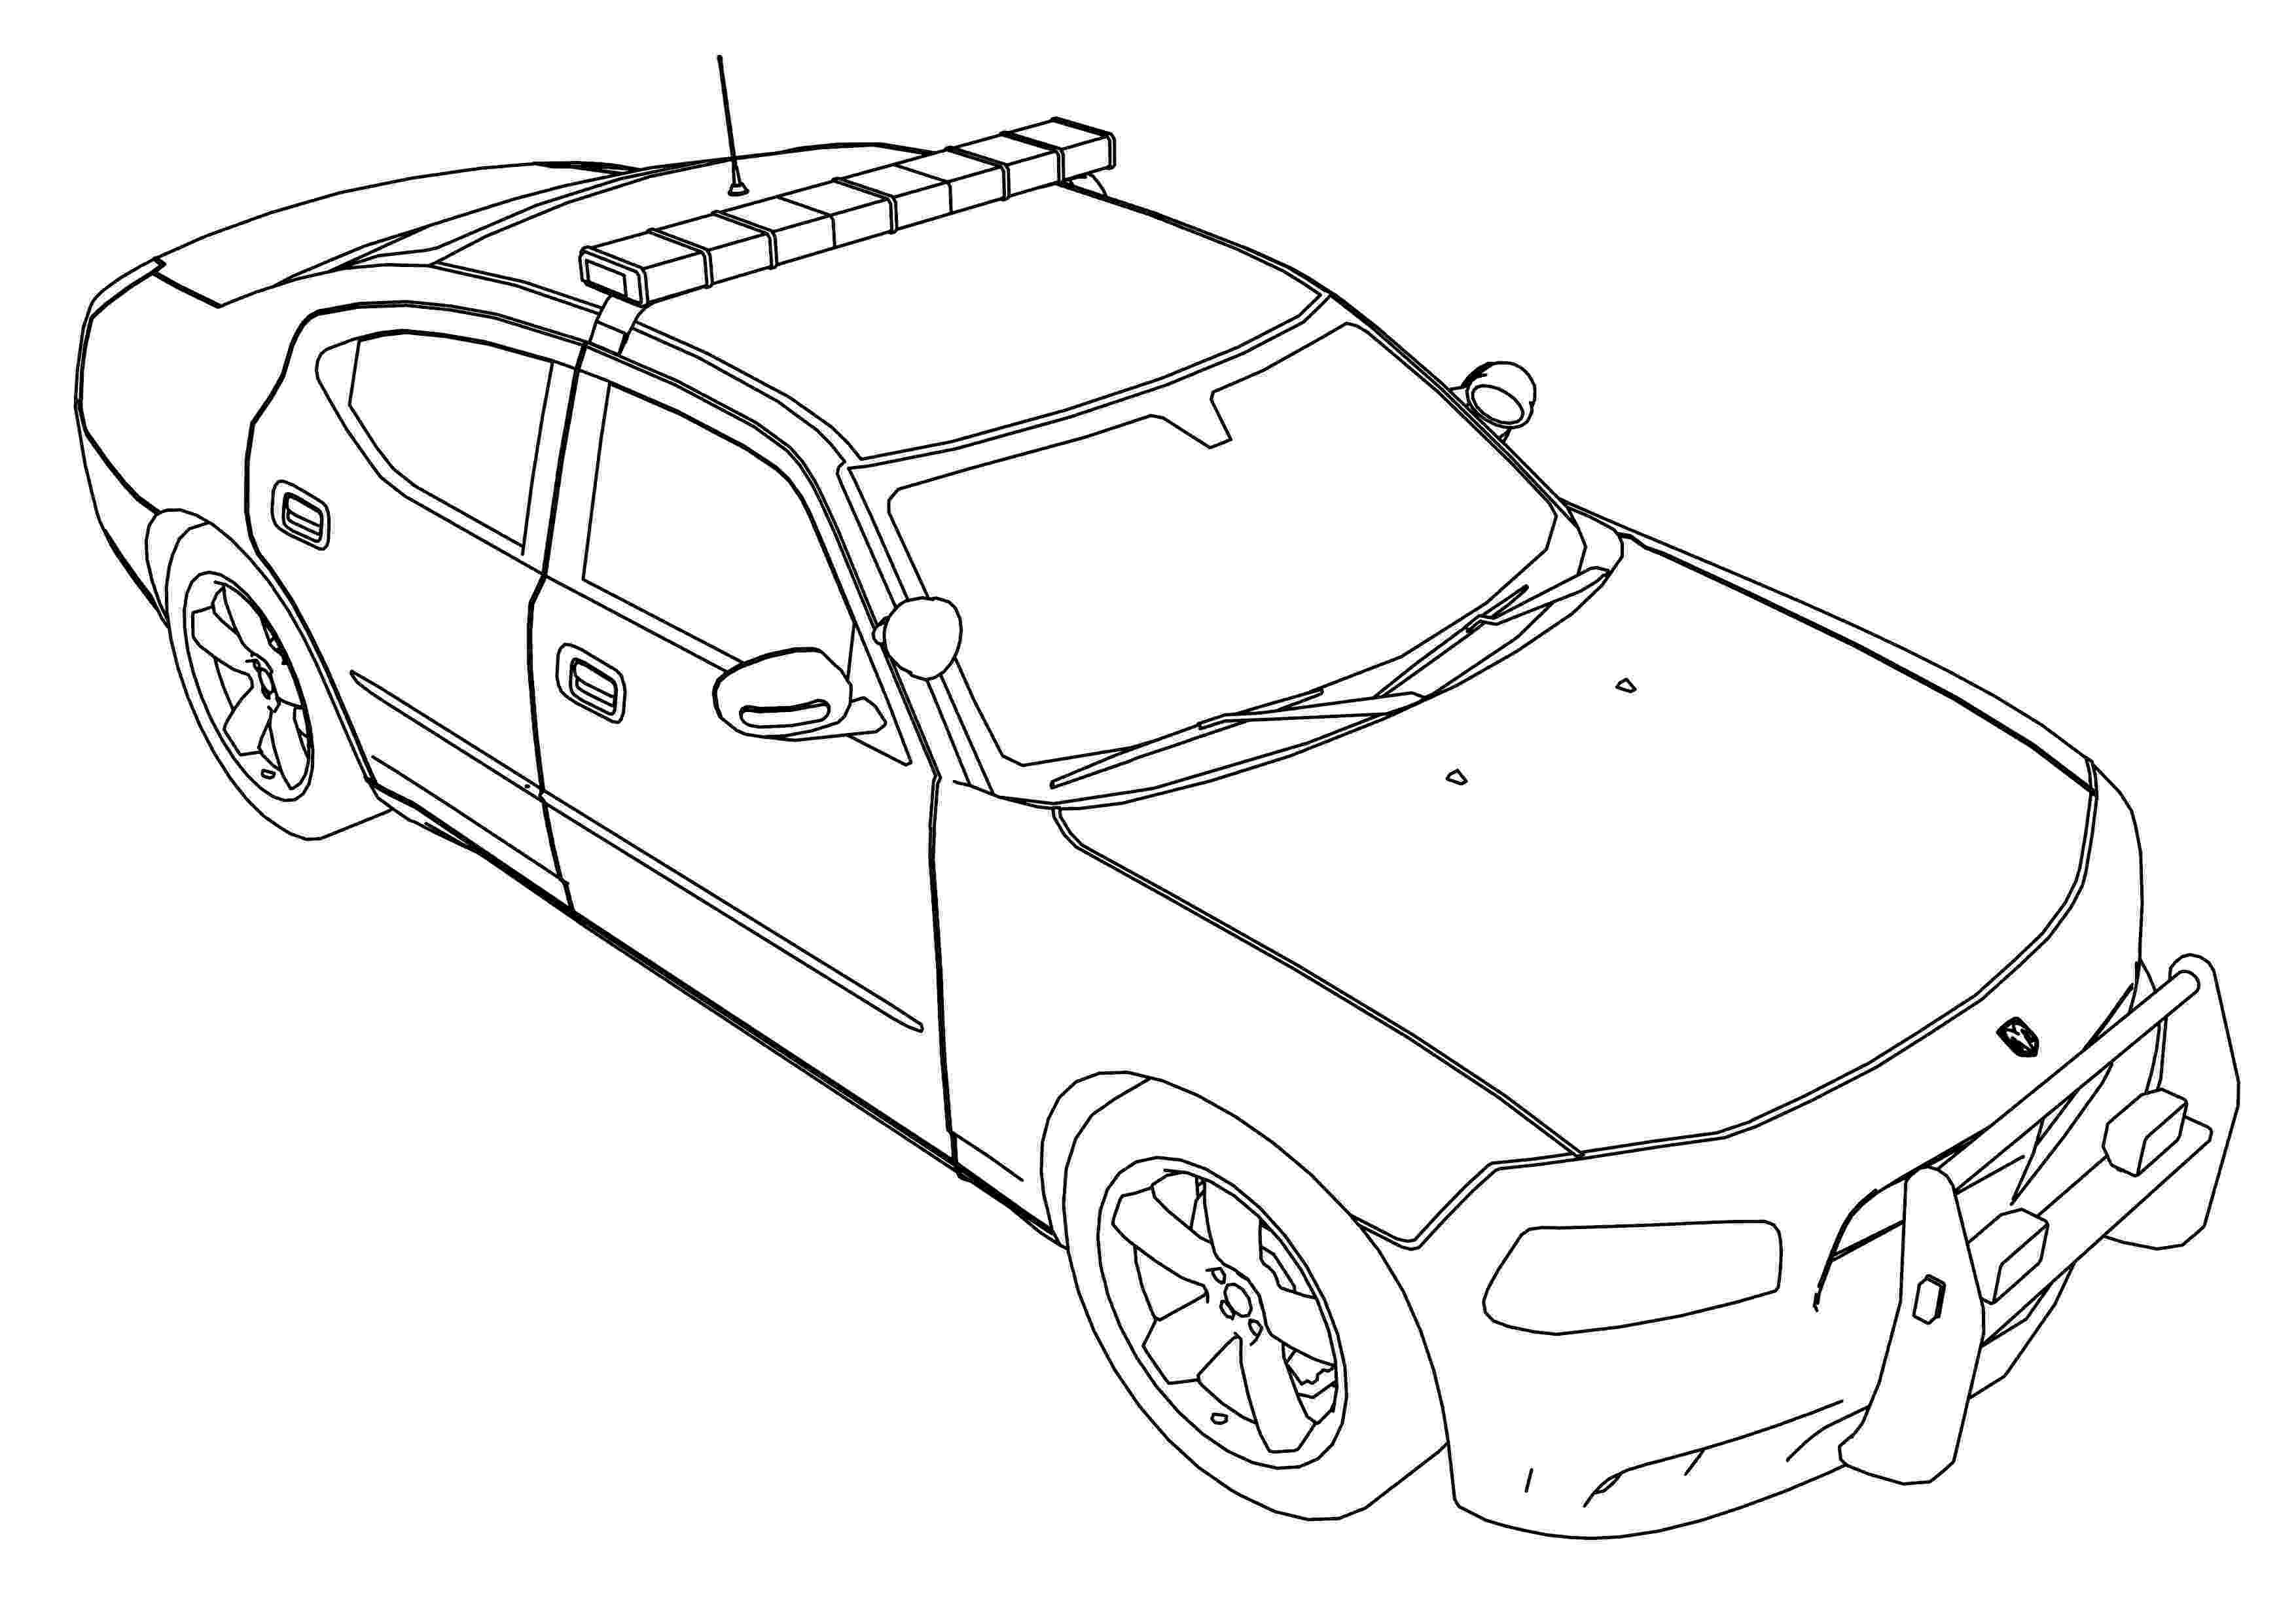 coloring pages of cars cars coloring pages cars of pages coloring